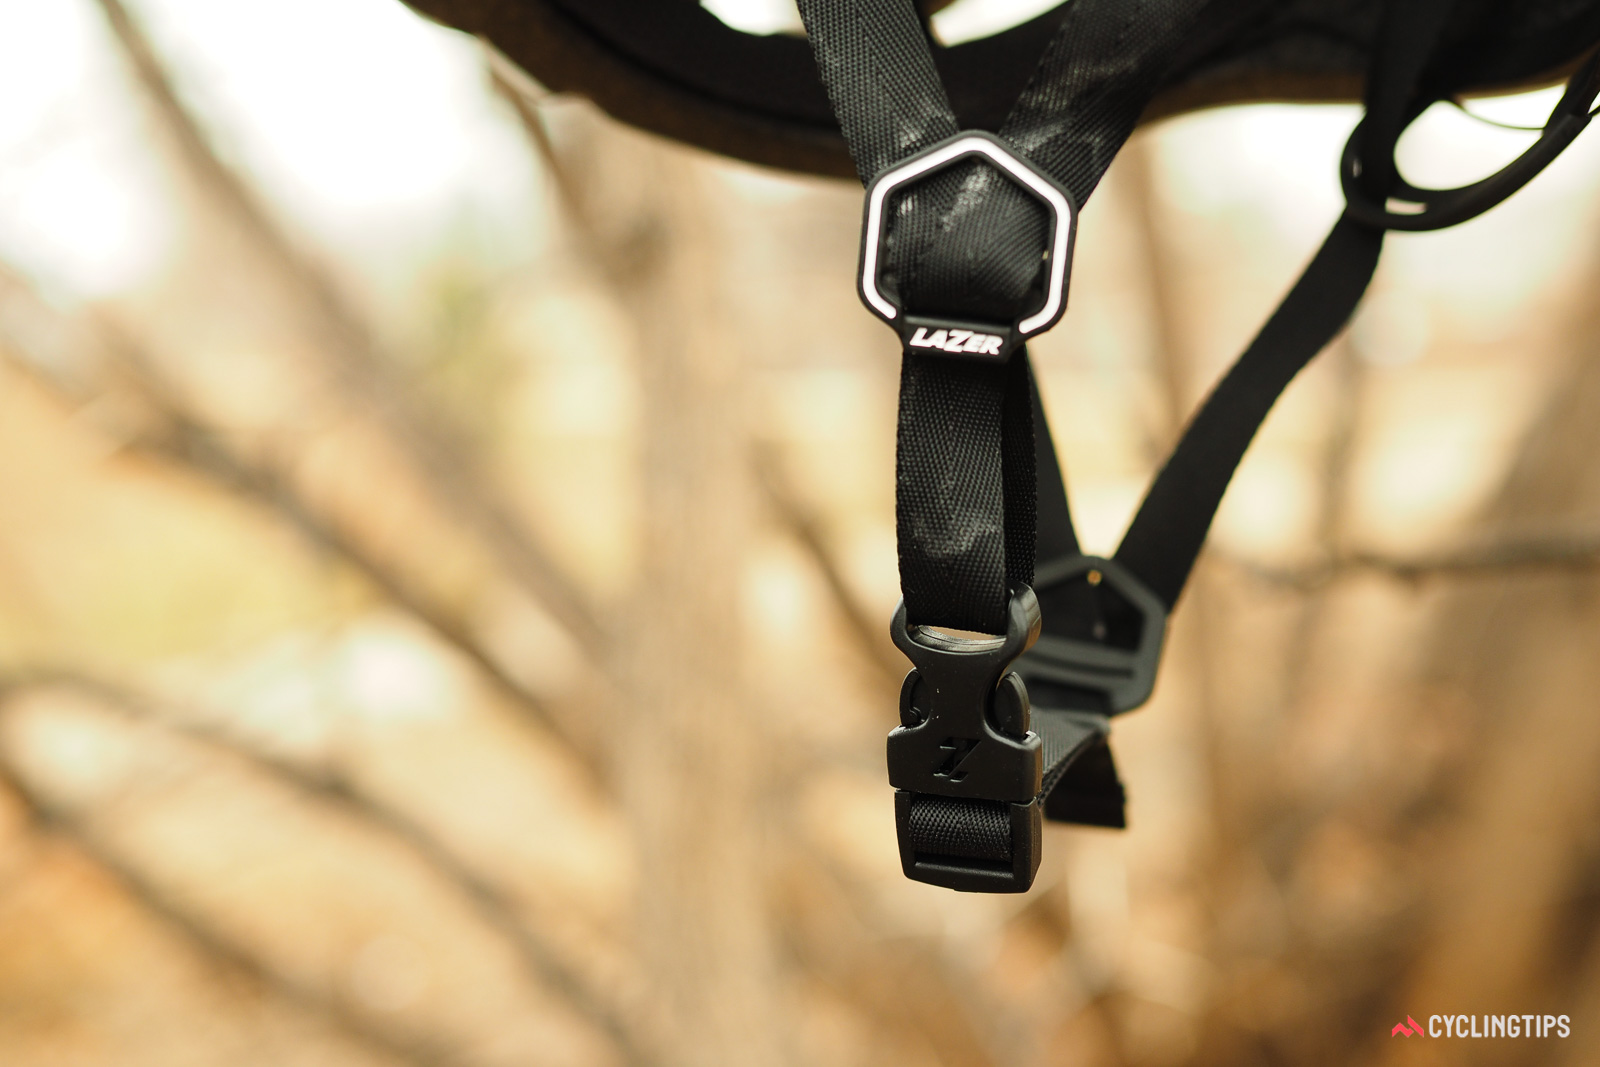 Lazer Bullet buckle and strap